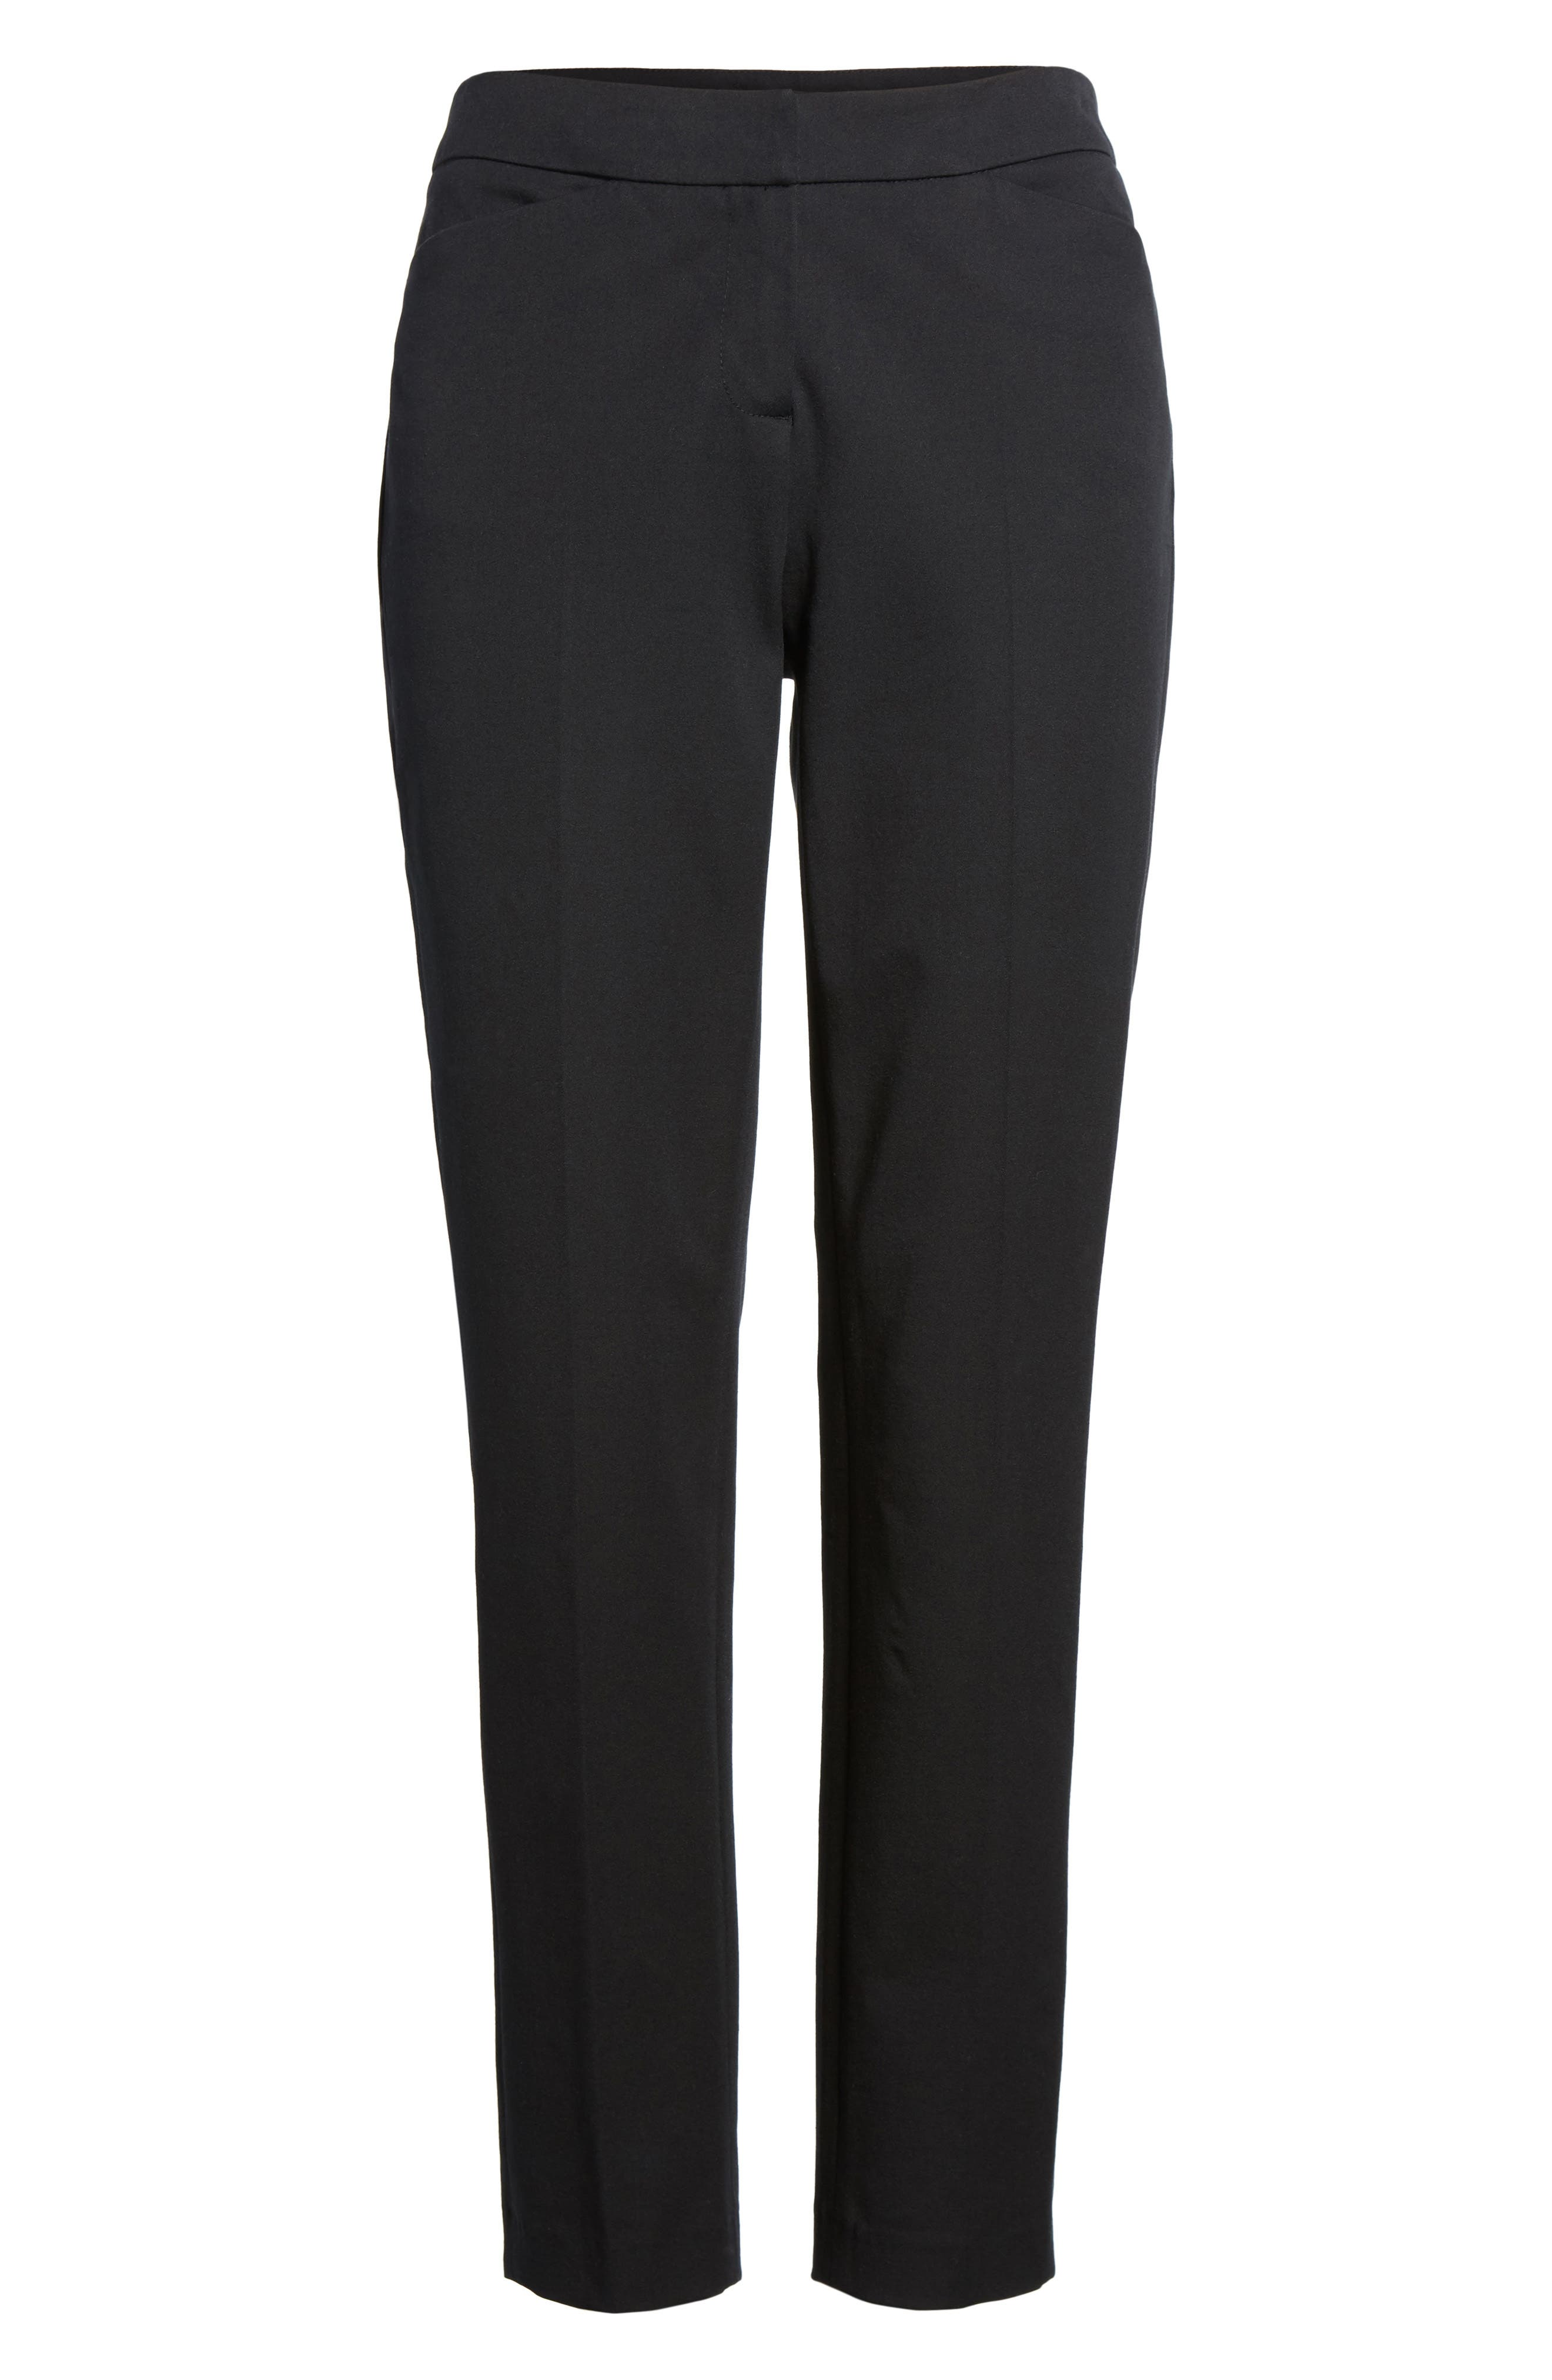 Ankle Pants,                             Alternate thumbnail 7, color,                             BLACK